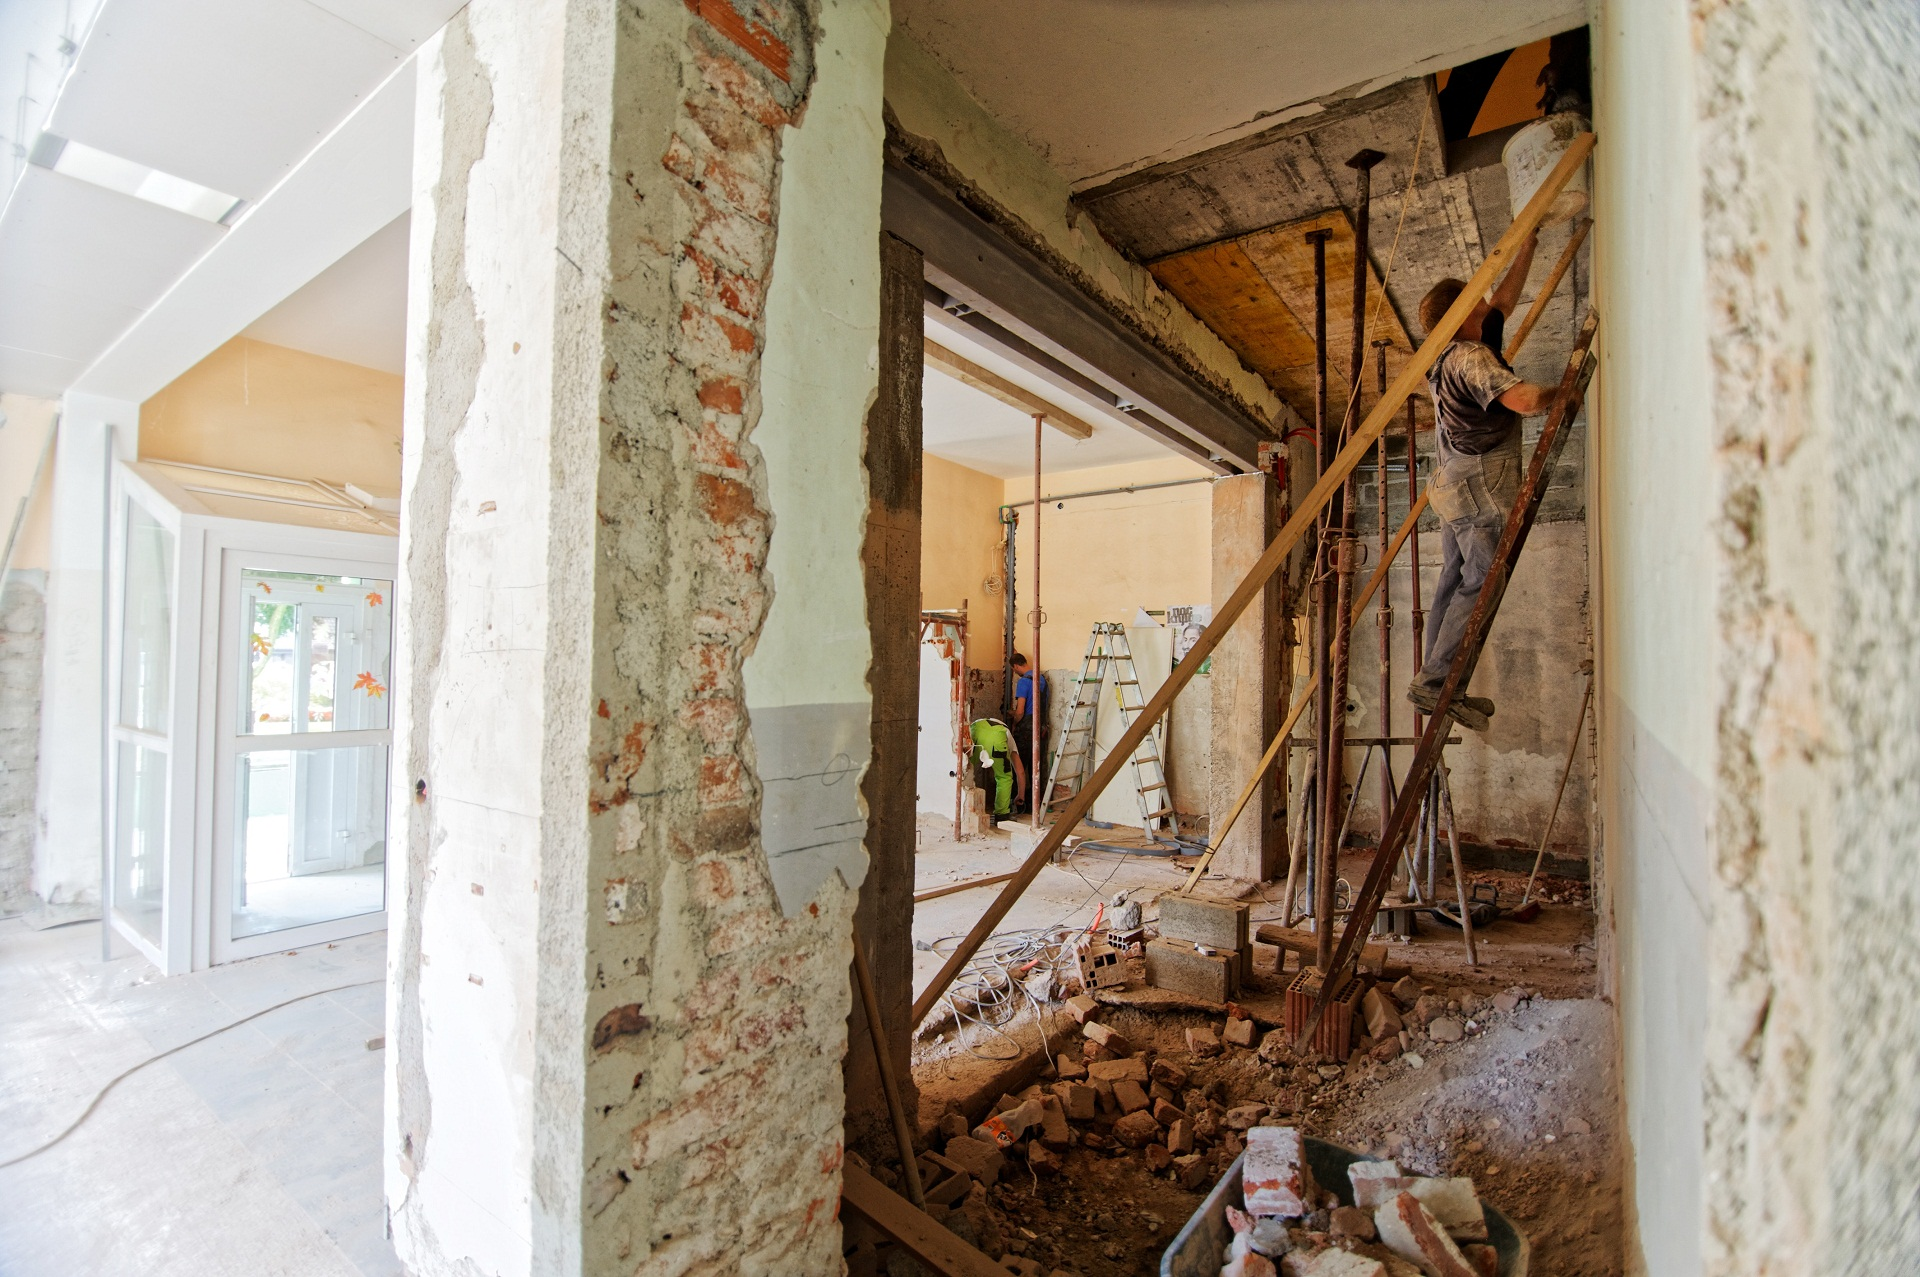 6 Things that You Should Never Do When You Are Remodeling Your House